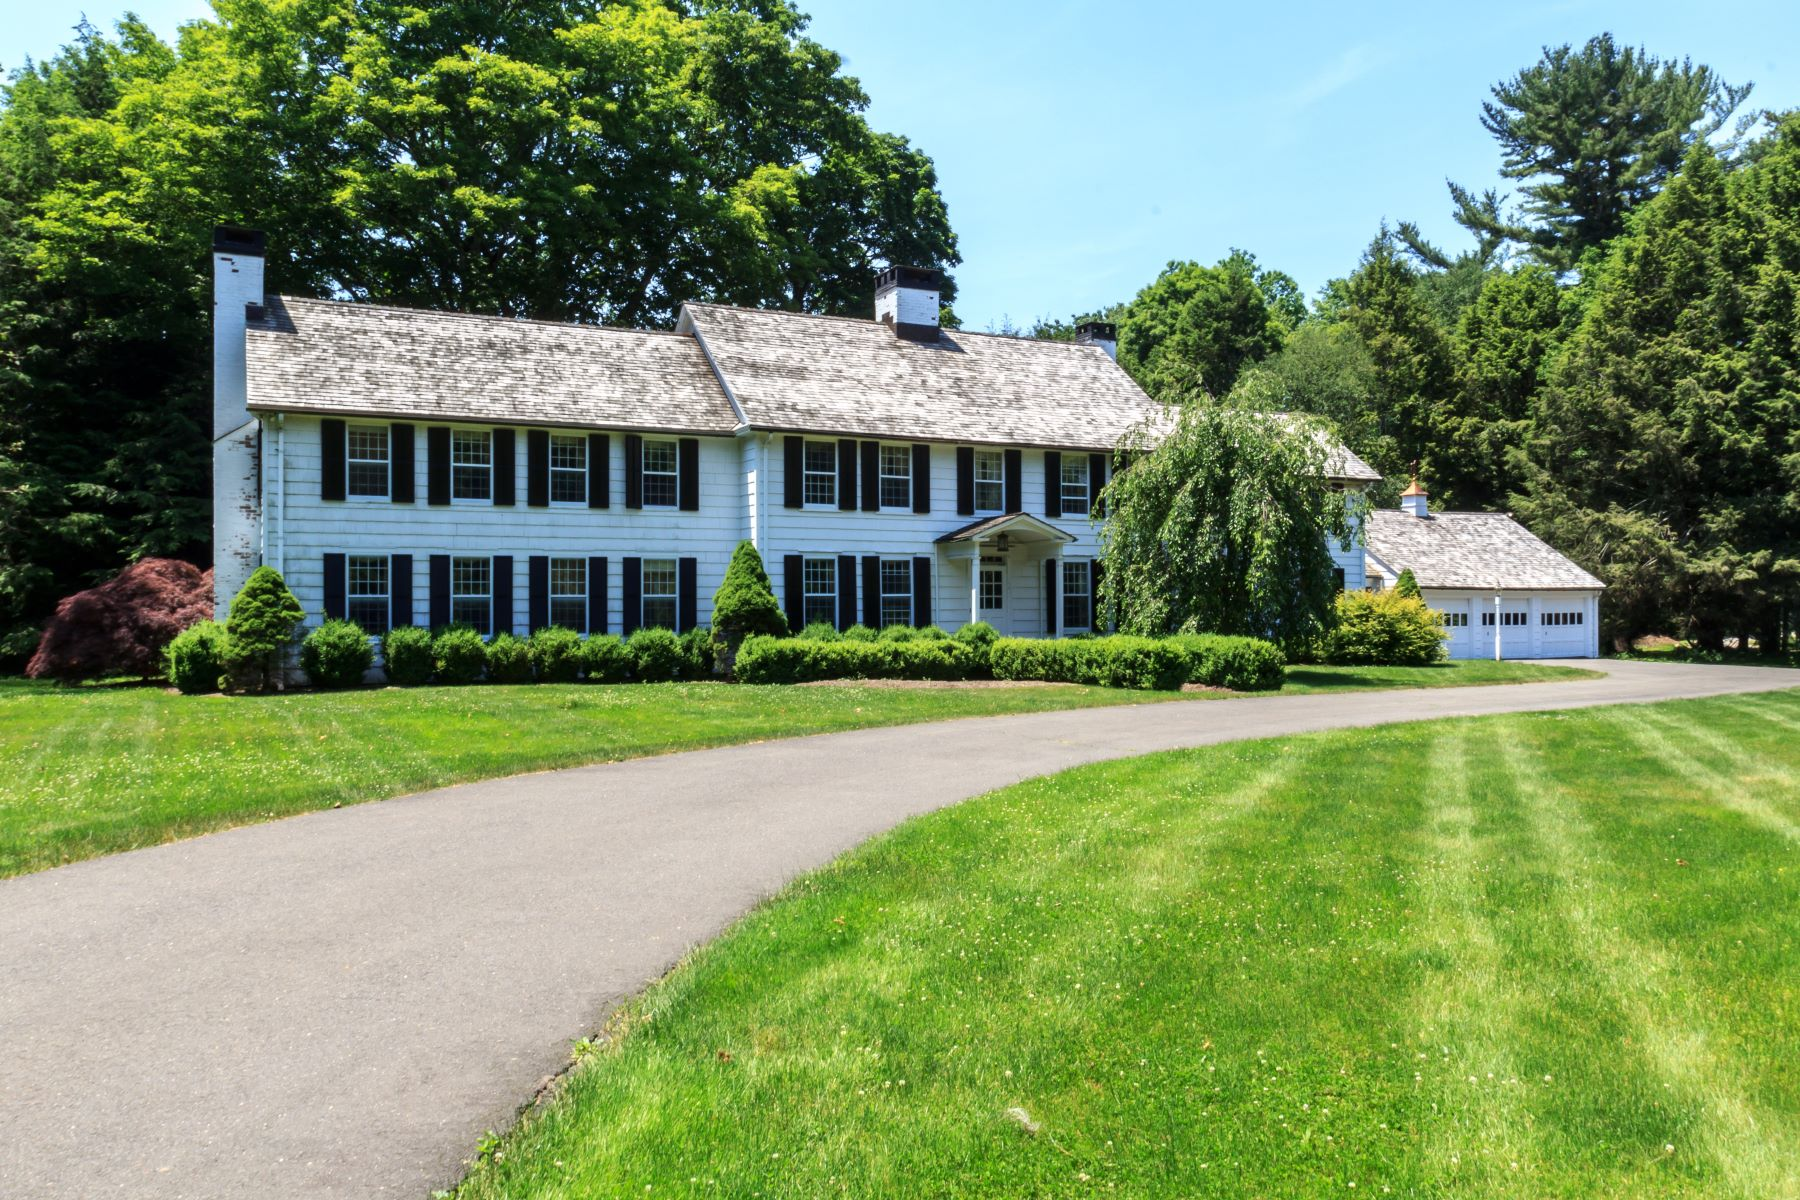 Eensgezinswoning voor Verkoop op Exceptional Classic Colonial on 3.5 Acres in Historic Aspetuck Area 7 Old Redding Road, Easton, Connecticut 06612 Verenigde Staten